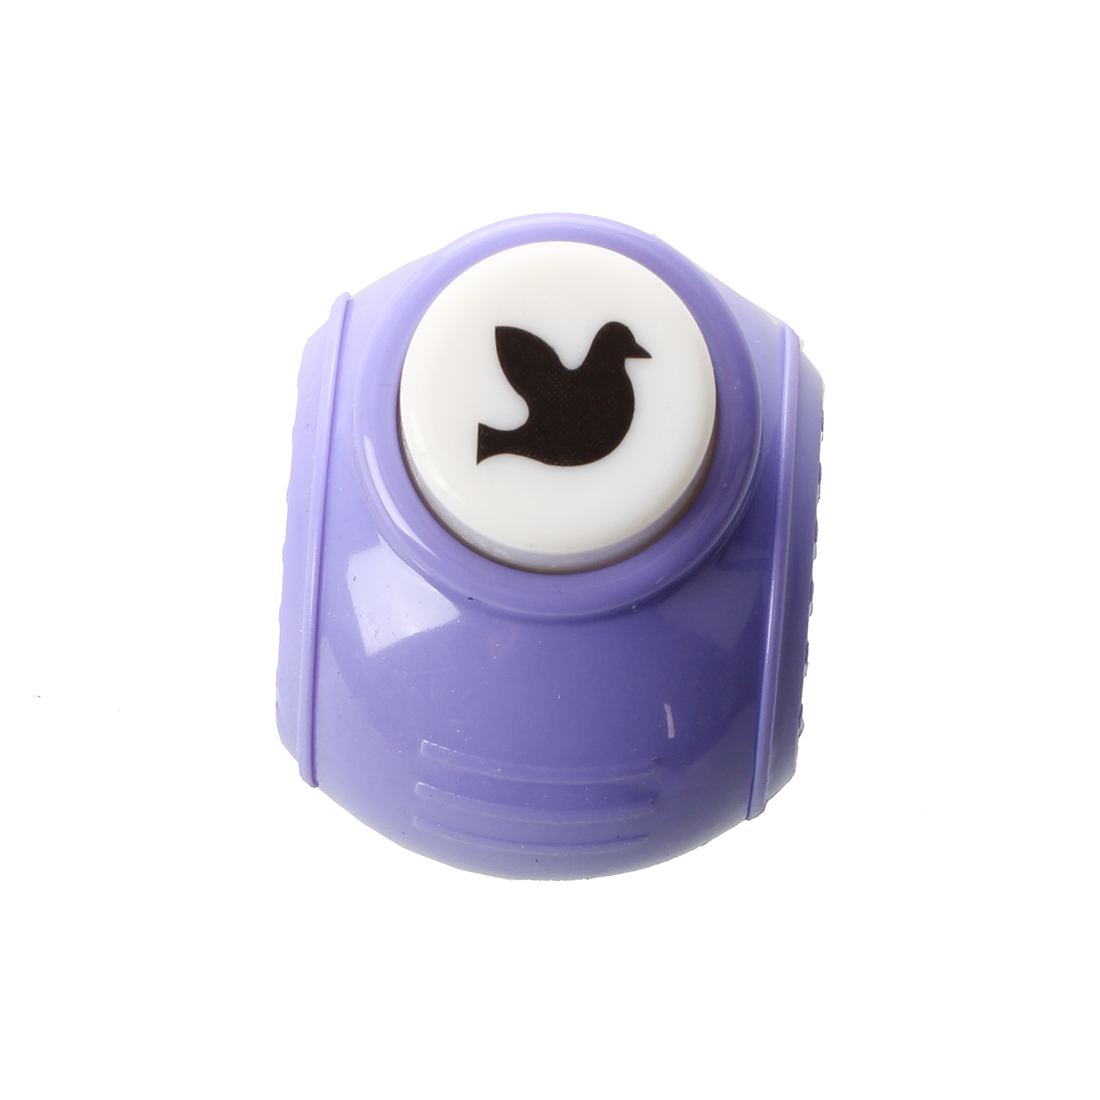 bird paper punch Find great deals on ebay for paper punch bird and paper punch circle shop with confidence.